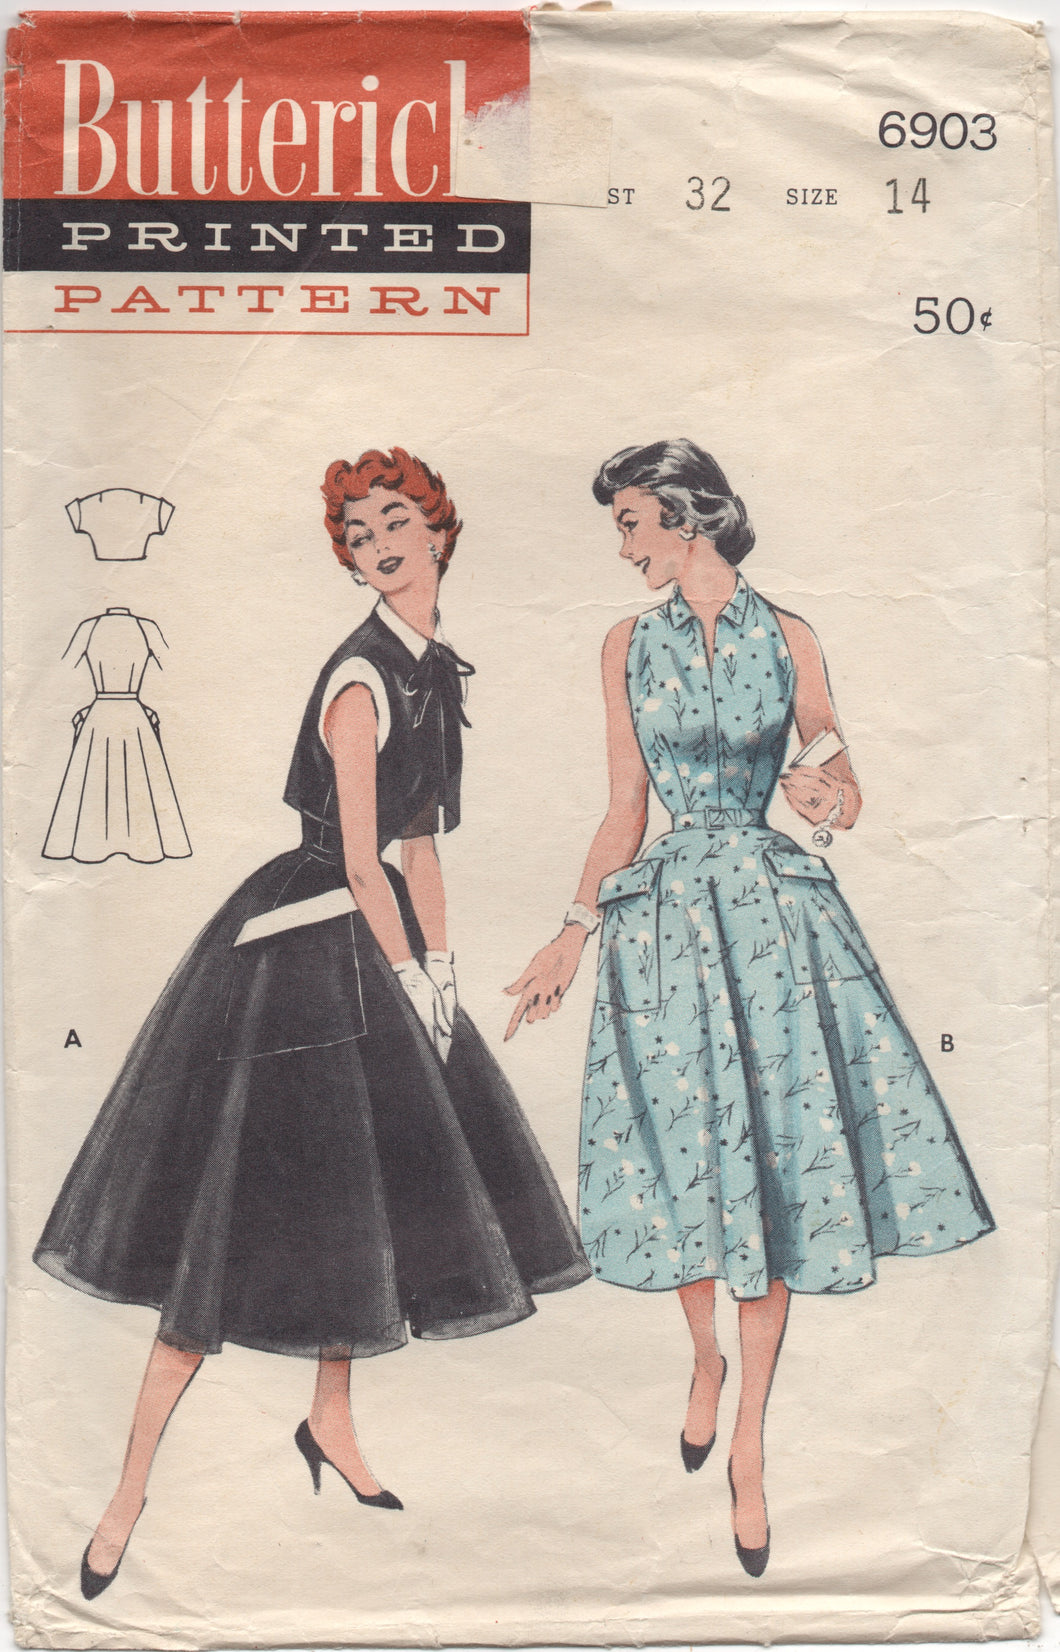 1950's Butterick Sleeveless One Piece Dress with Full Skirt & Bolero - Bust 32